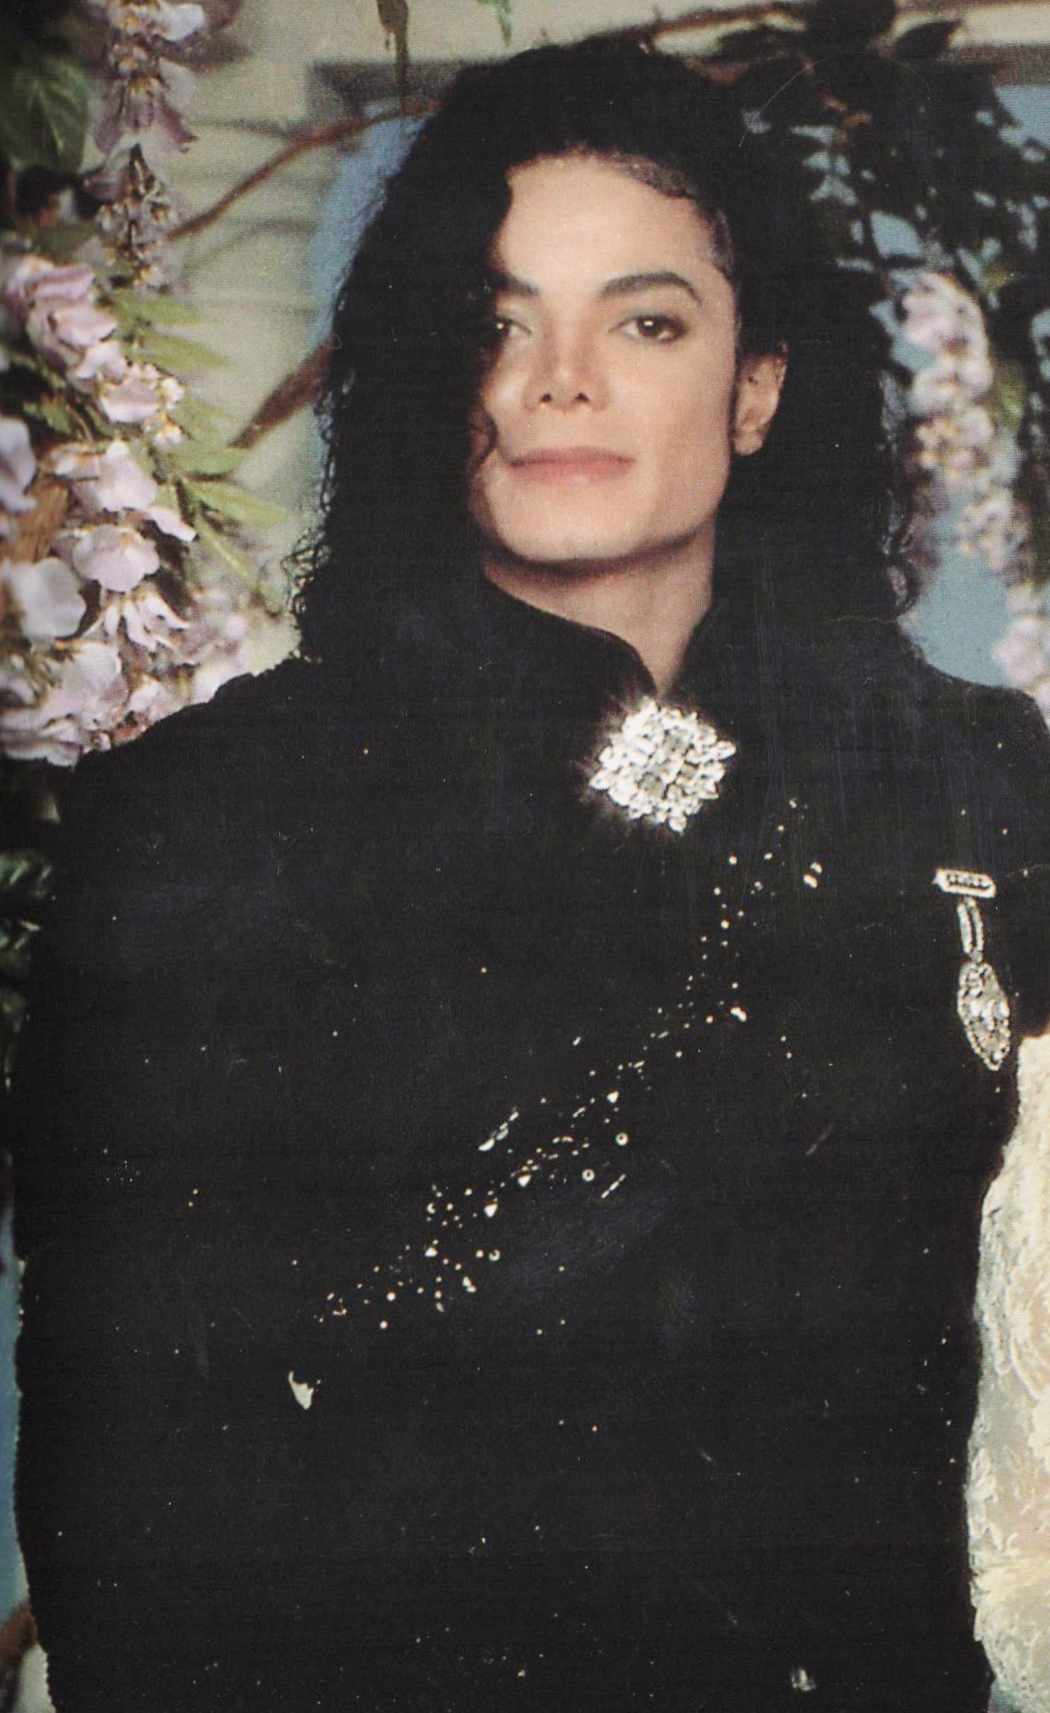 Michael Jackson - HQ Scan - Elizabeth Taylor Wedding